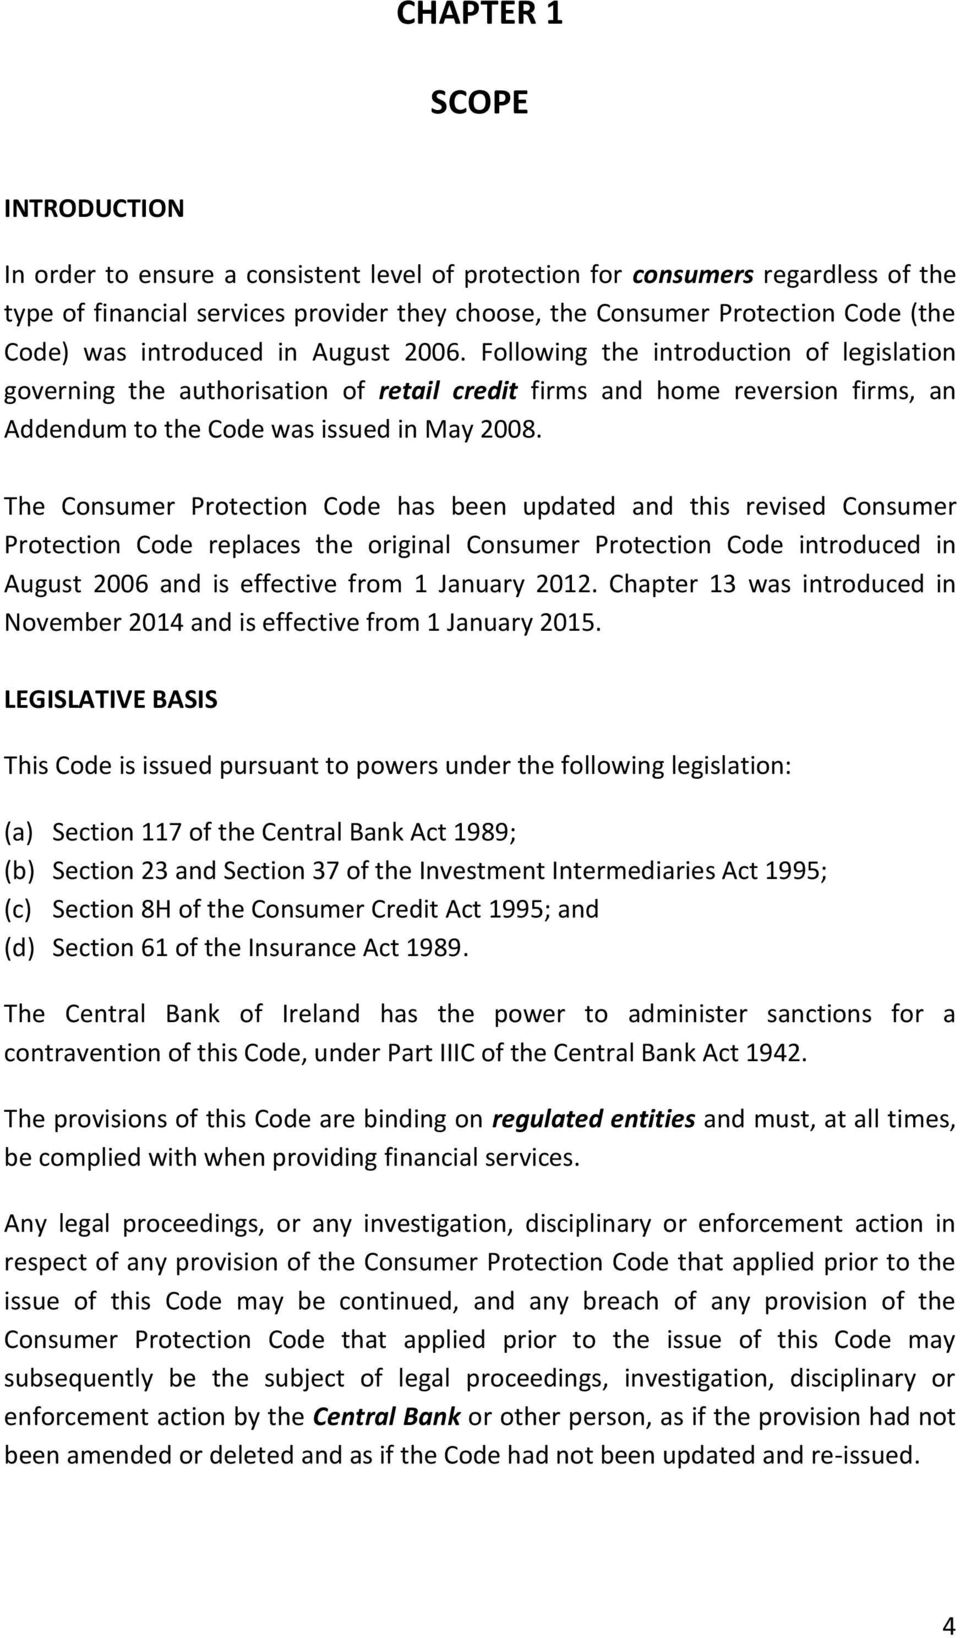 Following the introduction of legislation governing the authorisation of retail credit firms and home reversion firms, an Addendum to the Code was issued in May 2008.